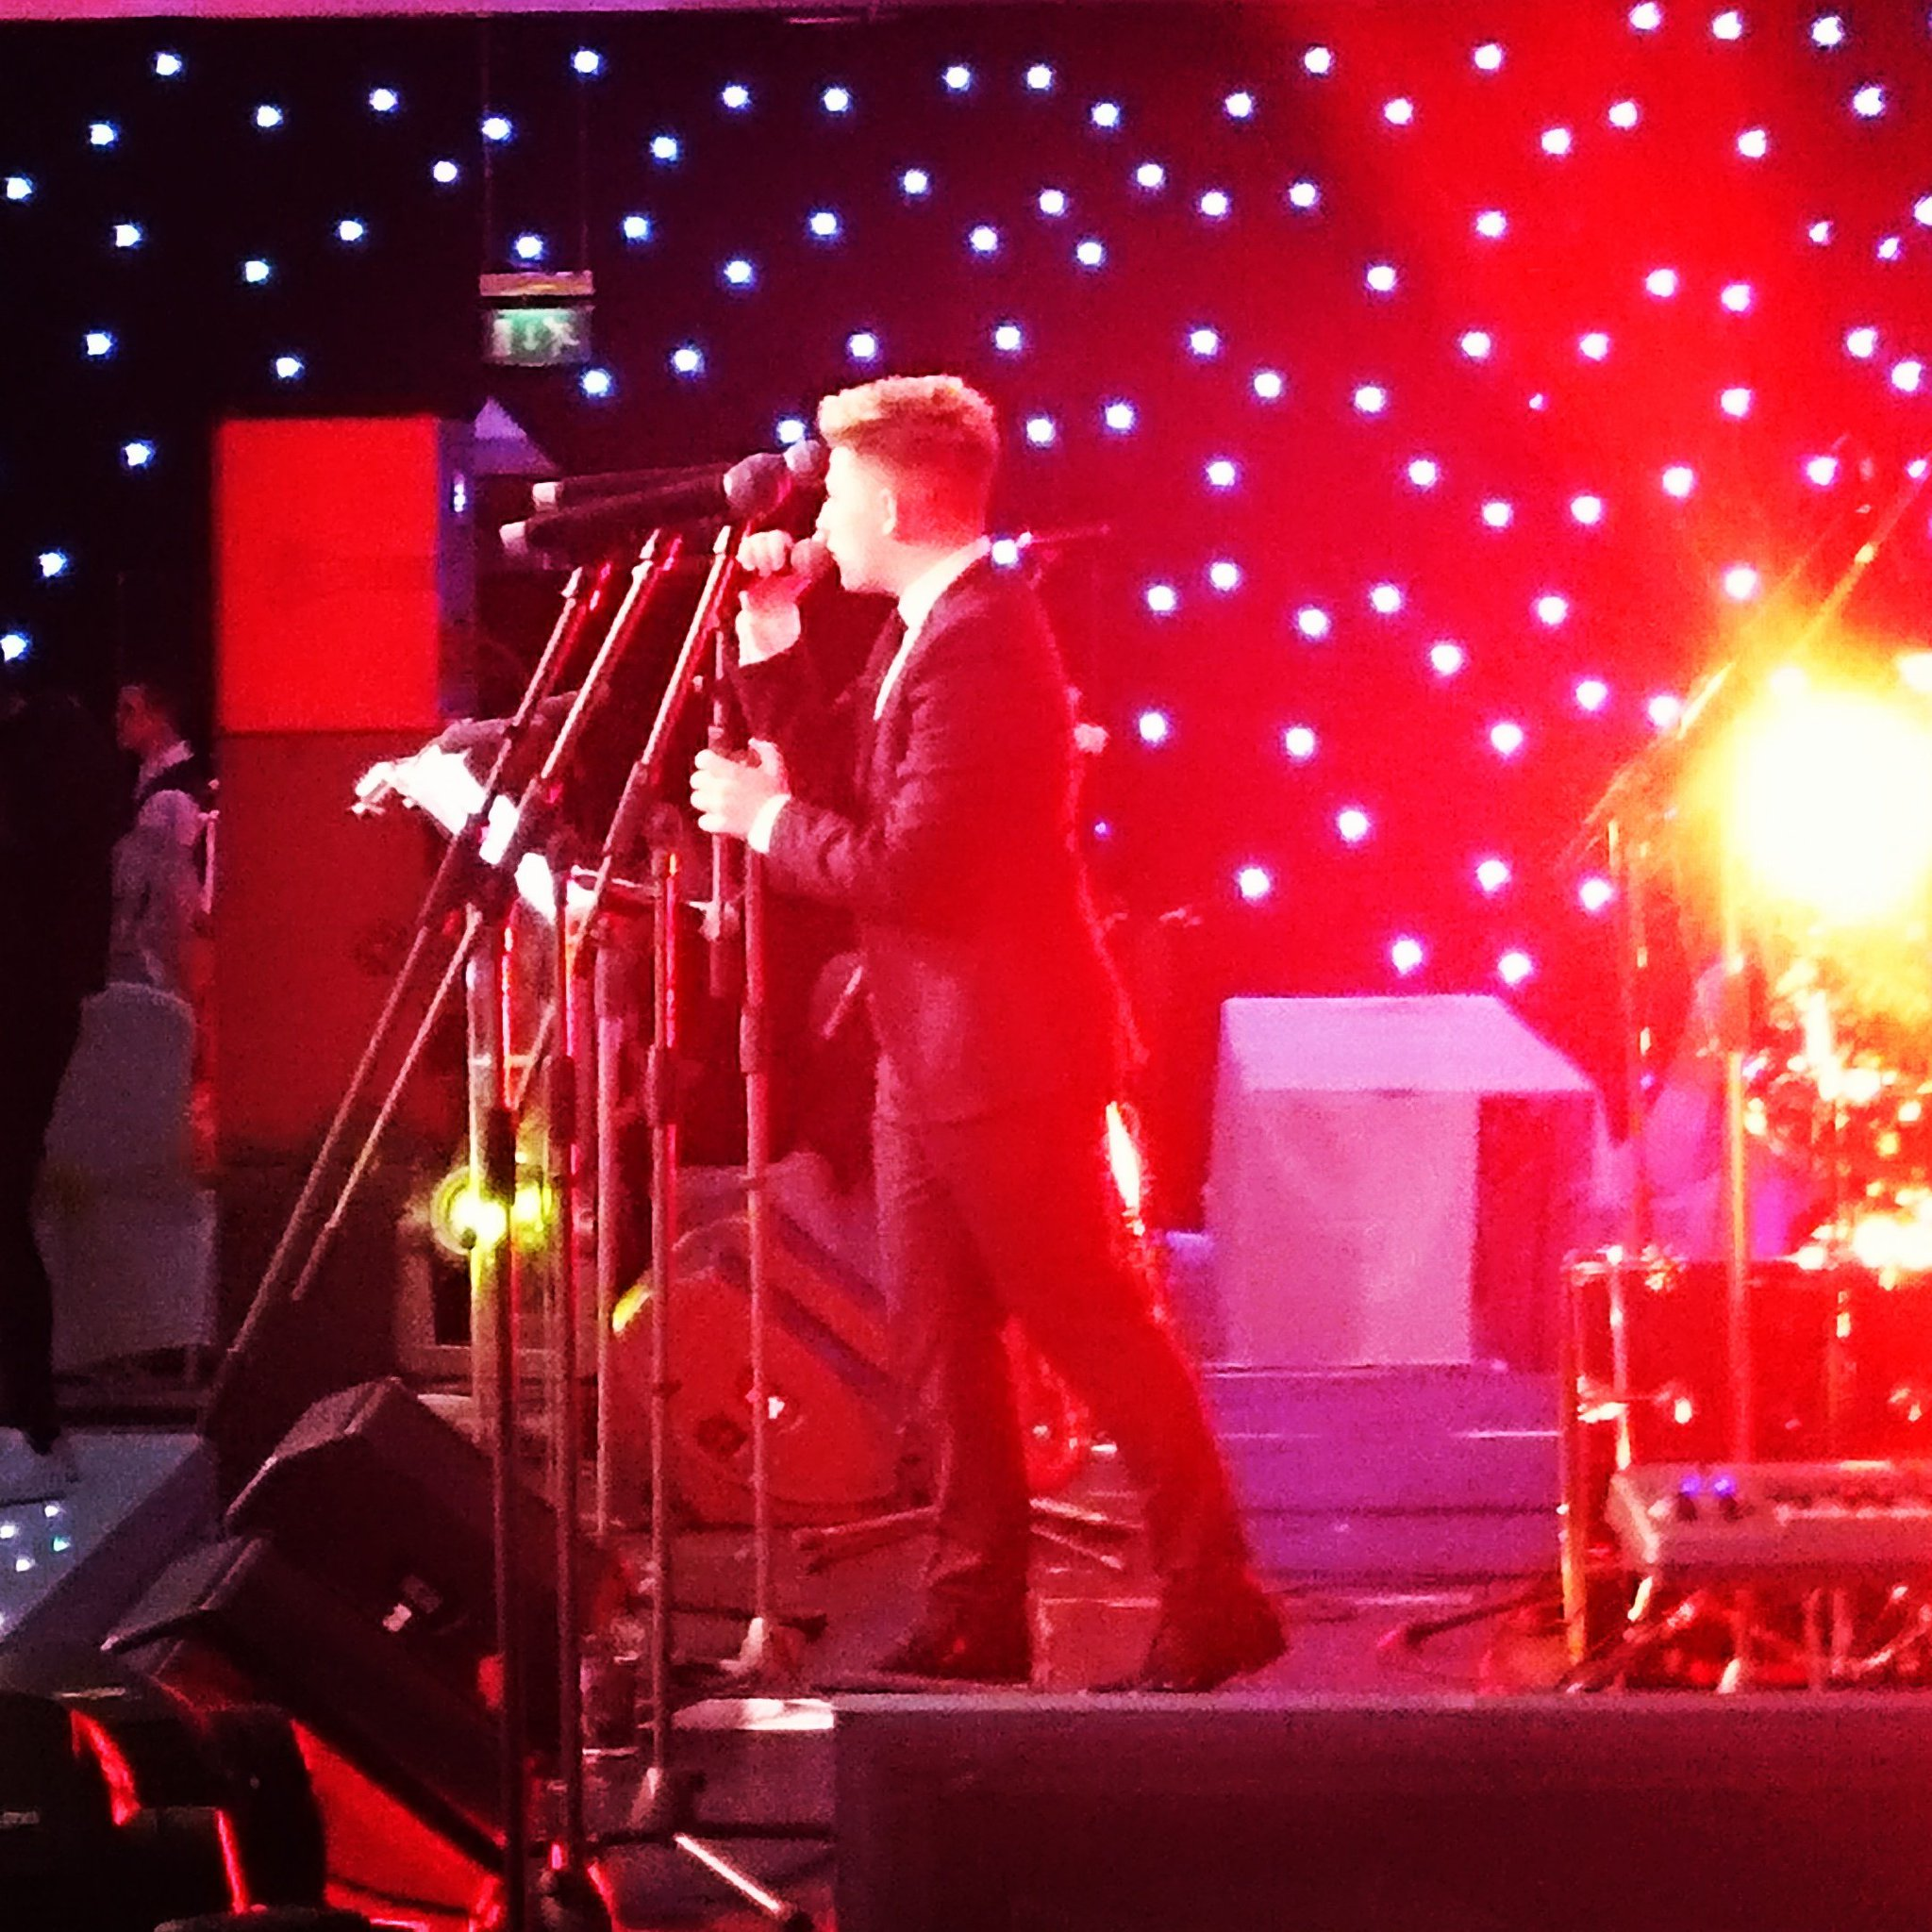 RT @StAndrewHospice: Thank you to the fantastic @nickymcdonald1 for entertaining us! #GrandSnowflakeBall https://t.co/Kea3RQ6irK